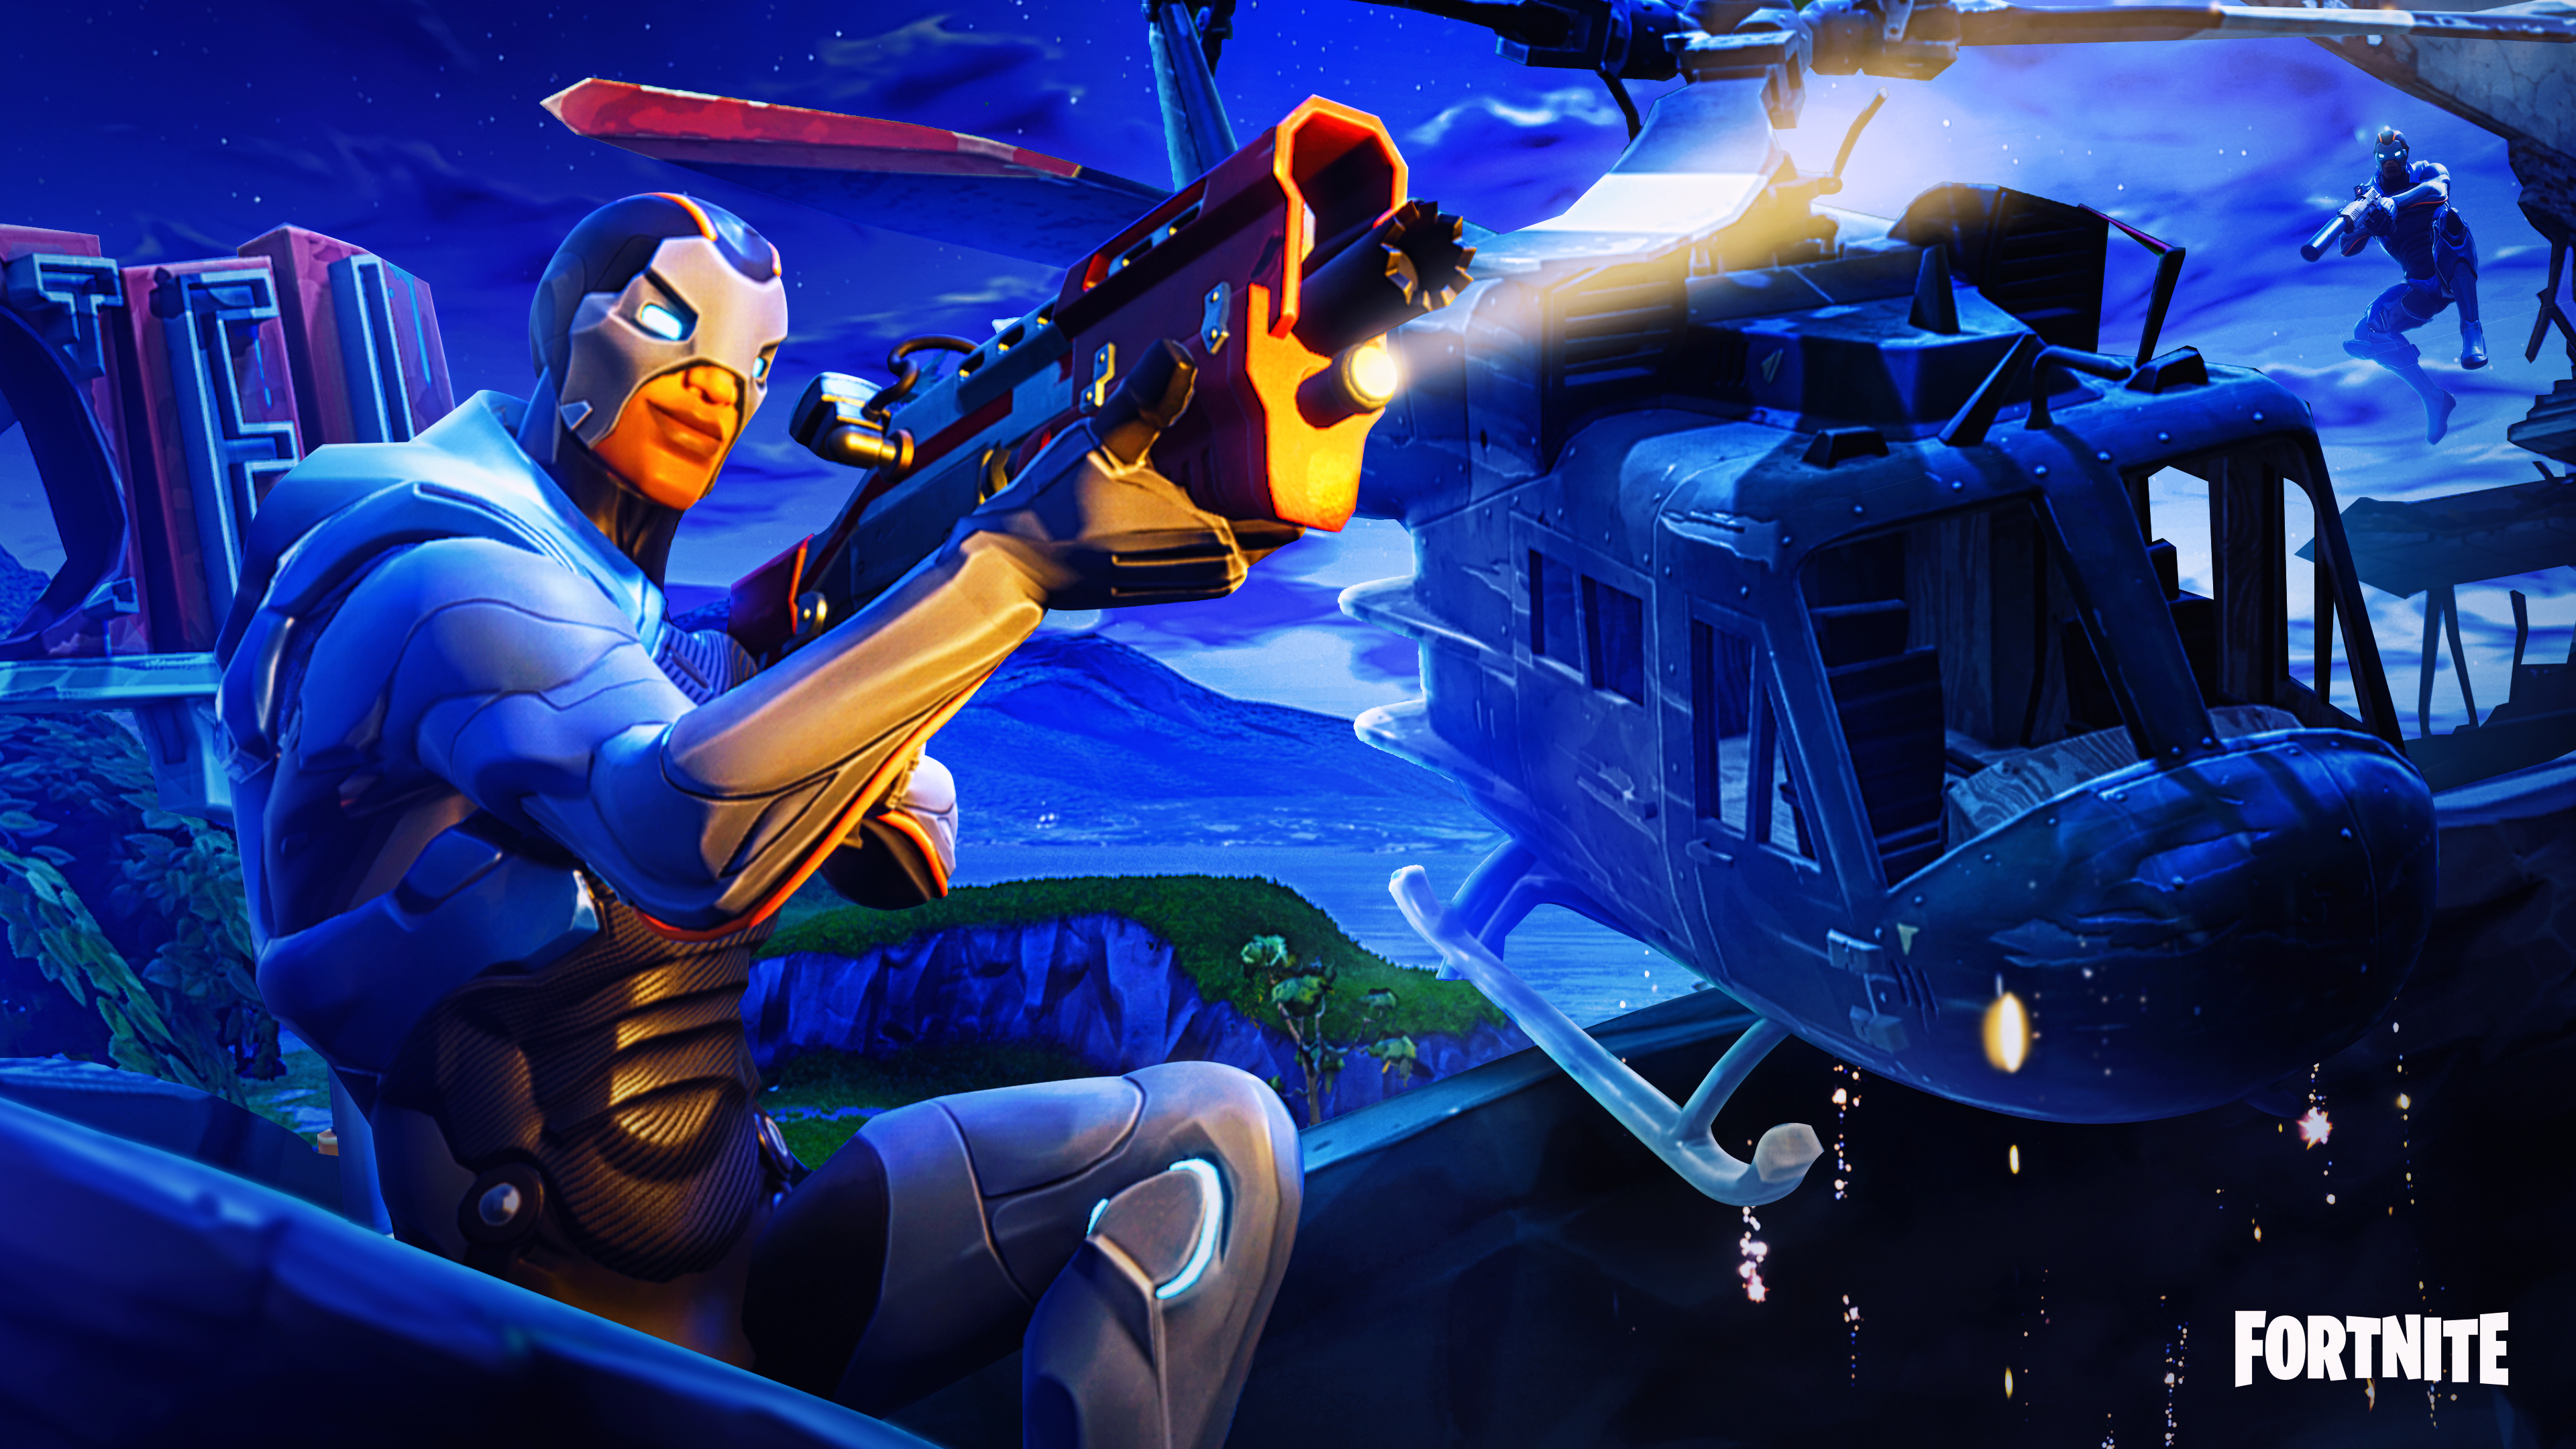 Fortnite Season 4 Wallpaper Posted By Zoey Cunningham